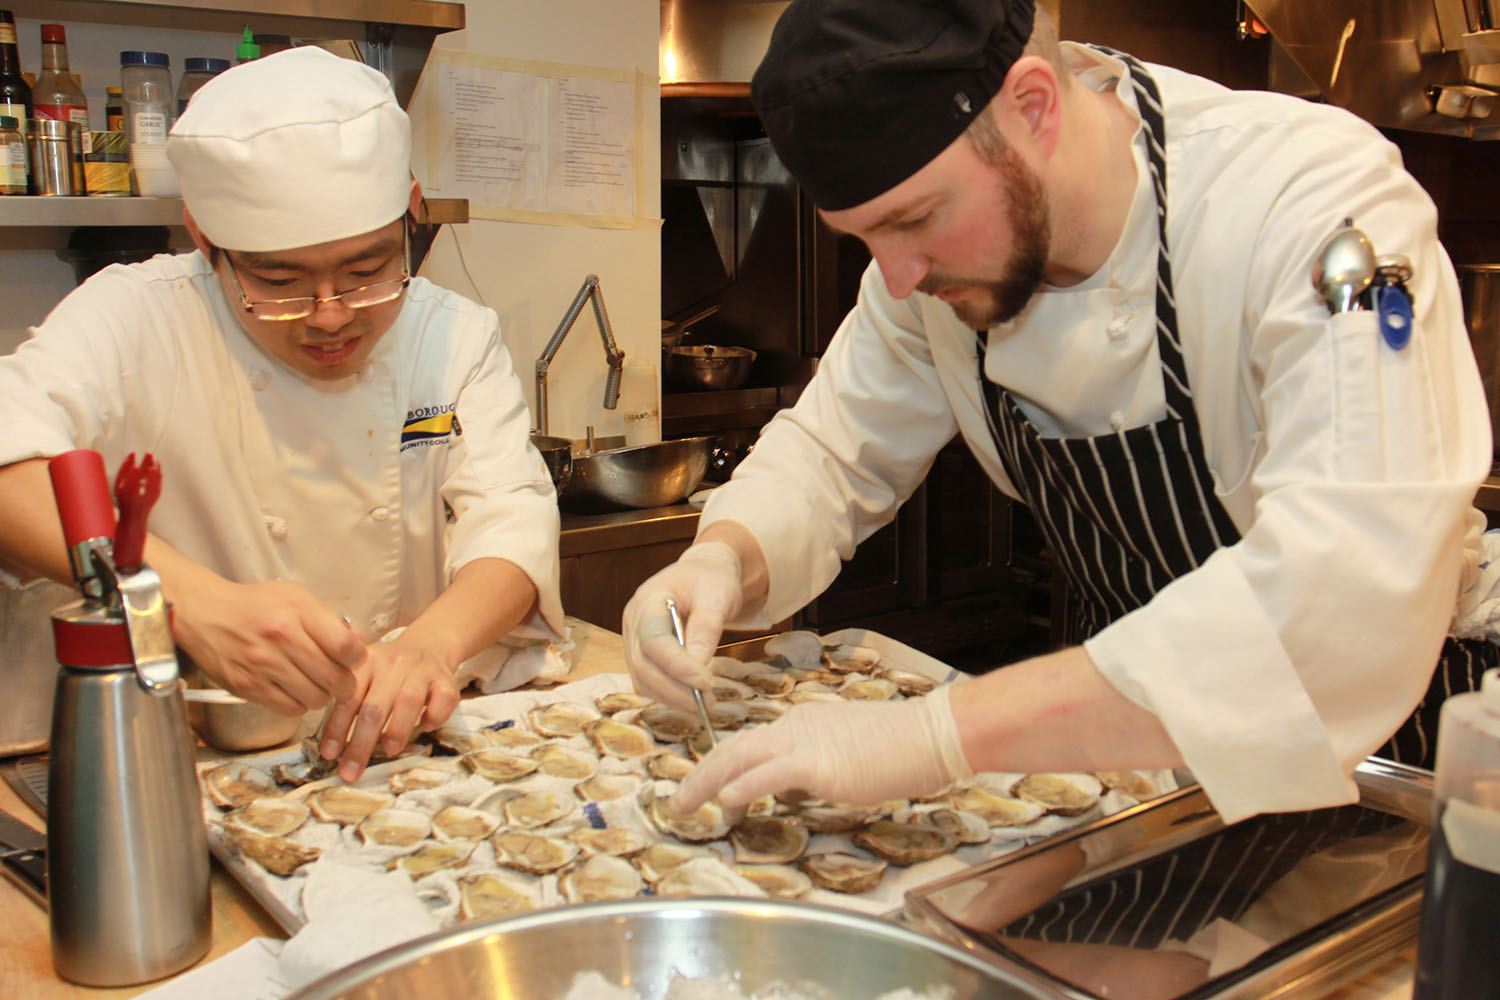 Preparing oysters in the Beard House kitchen